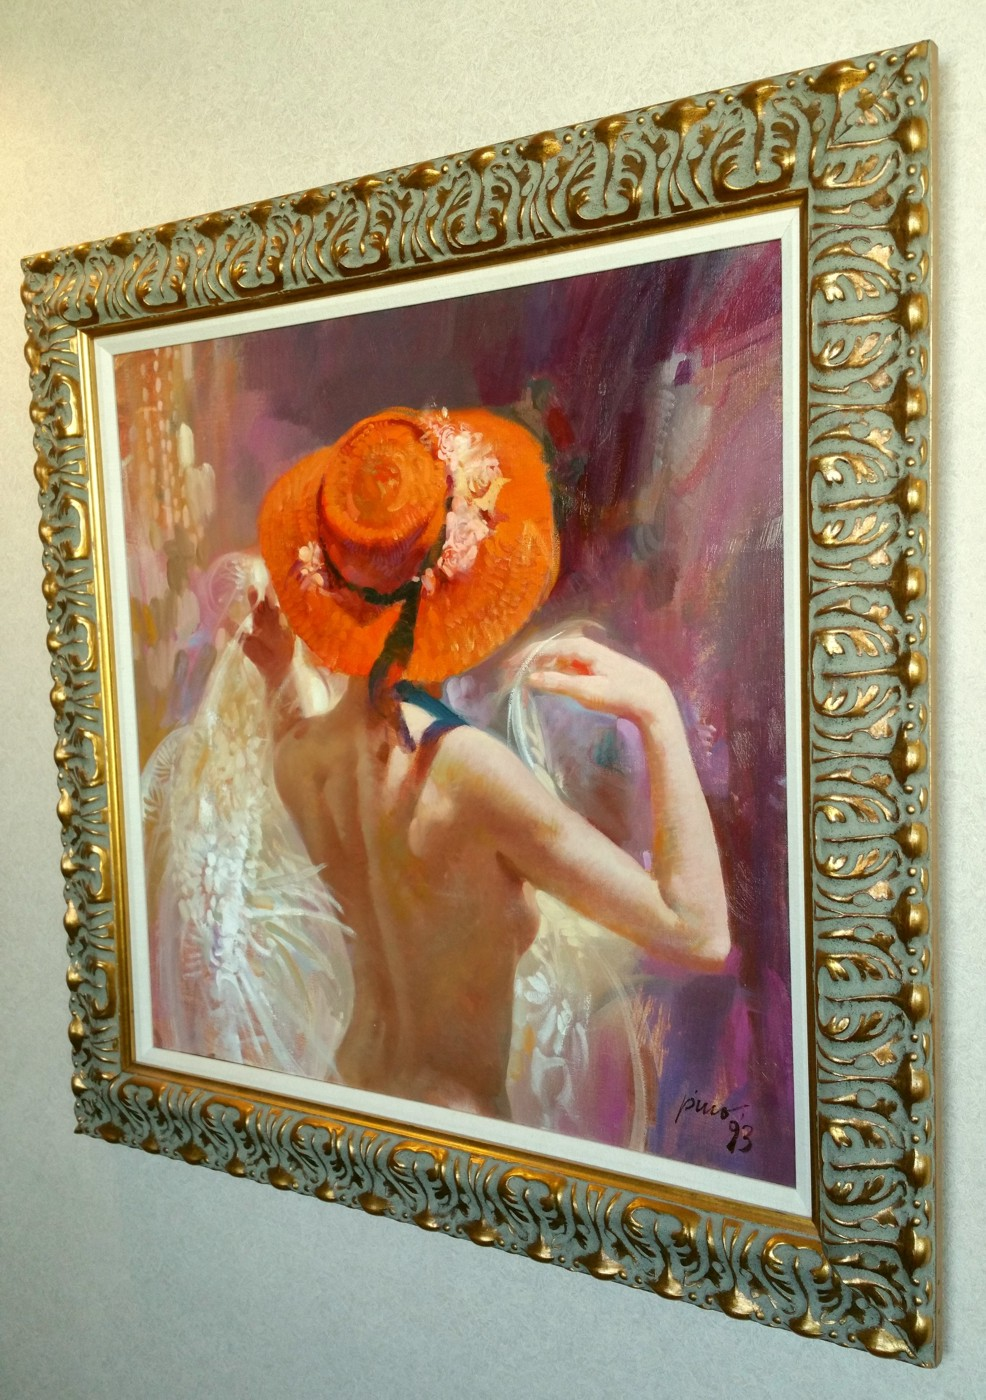 LADY IN ORANGE HAT  by Pino Original Painting, Oil on Canvas